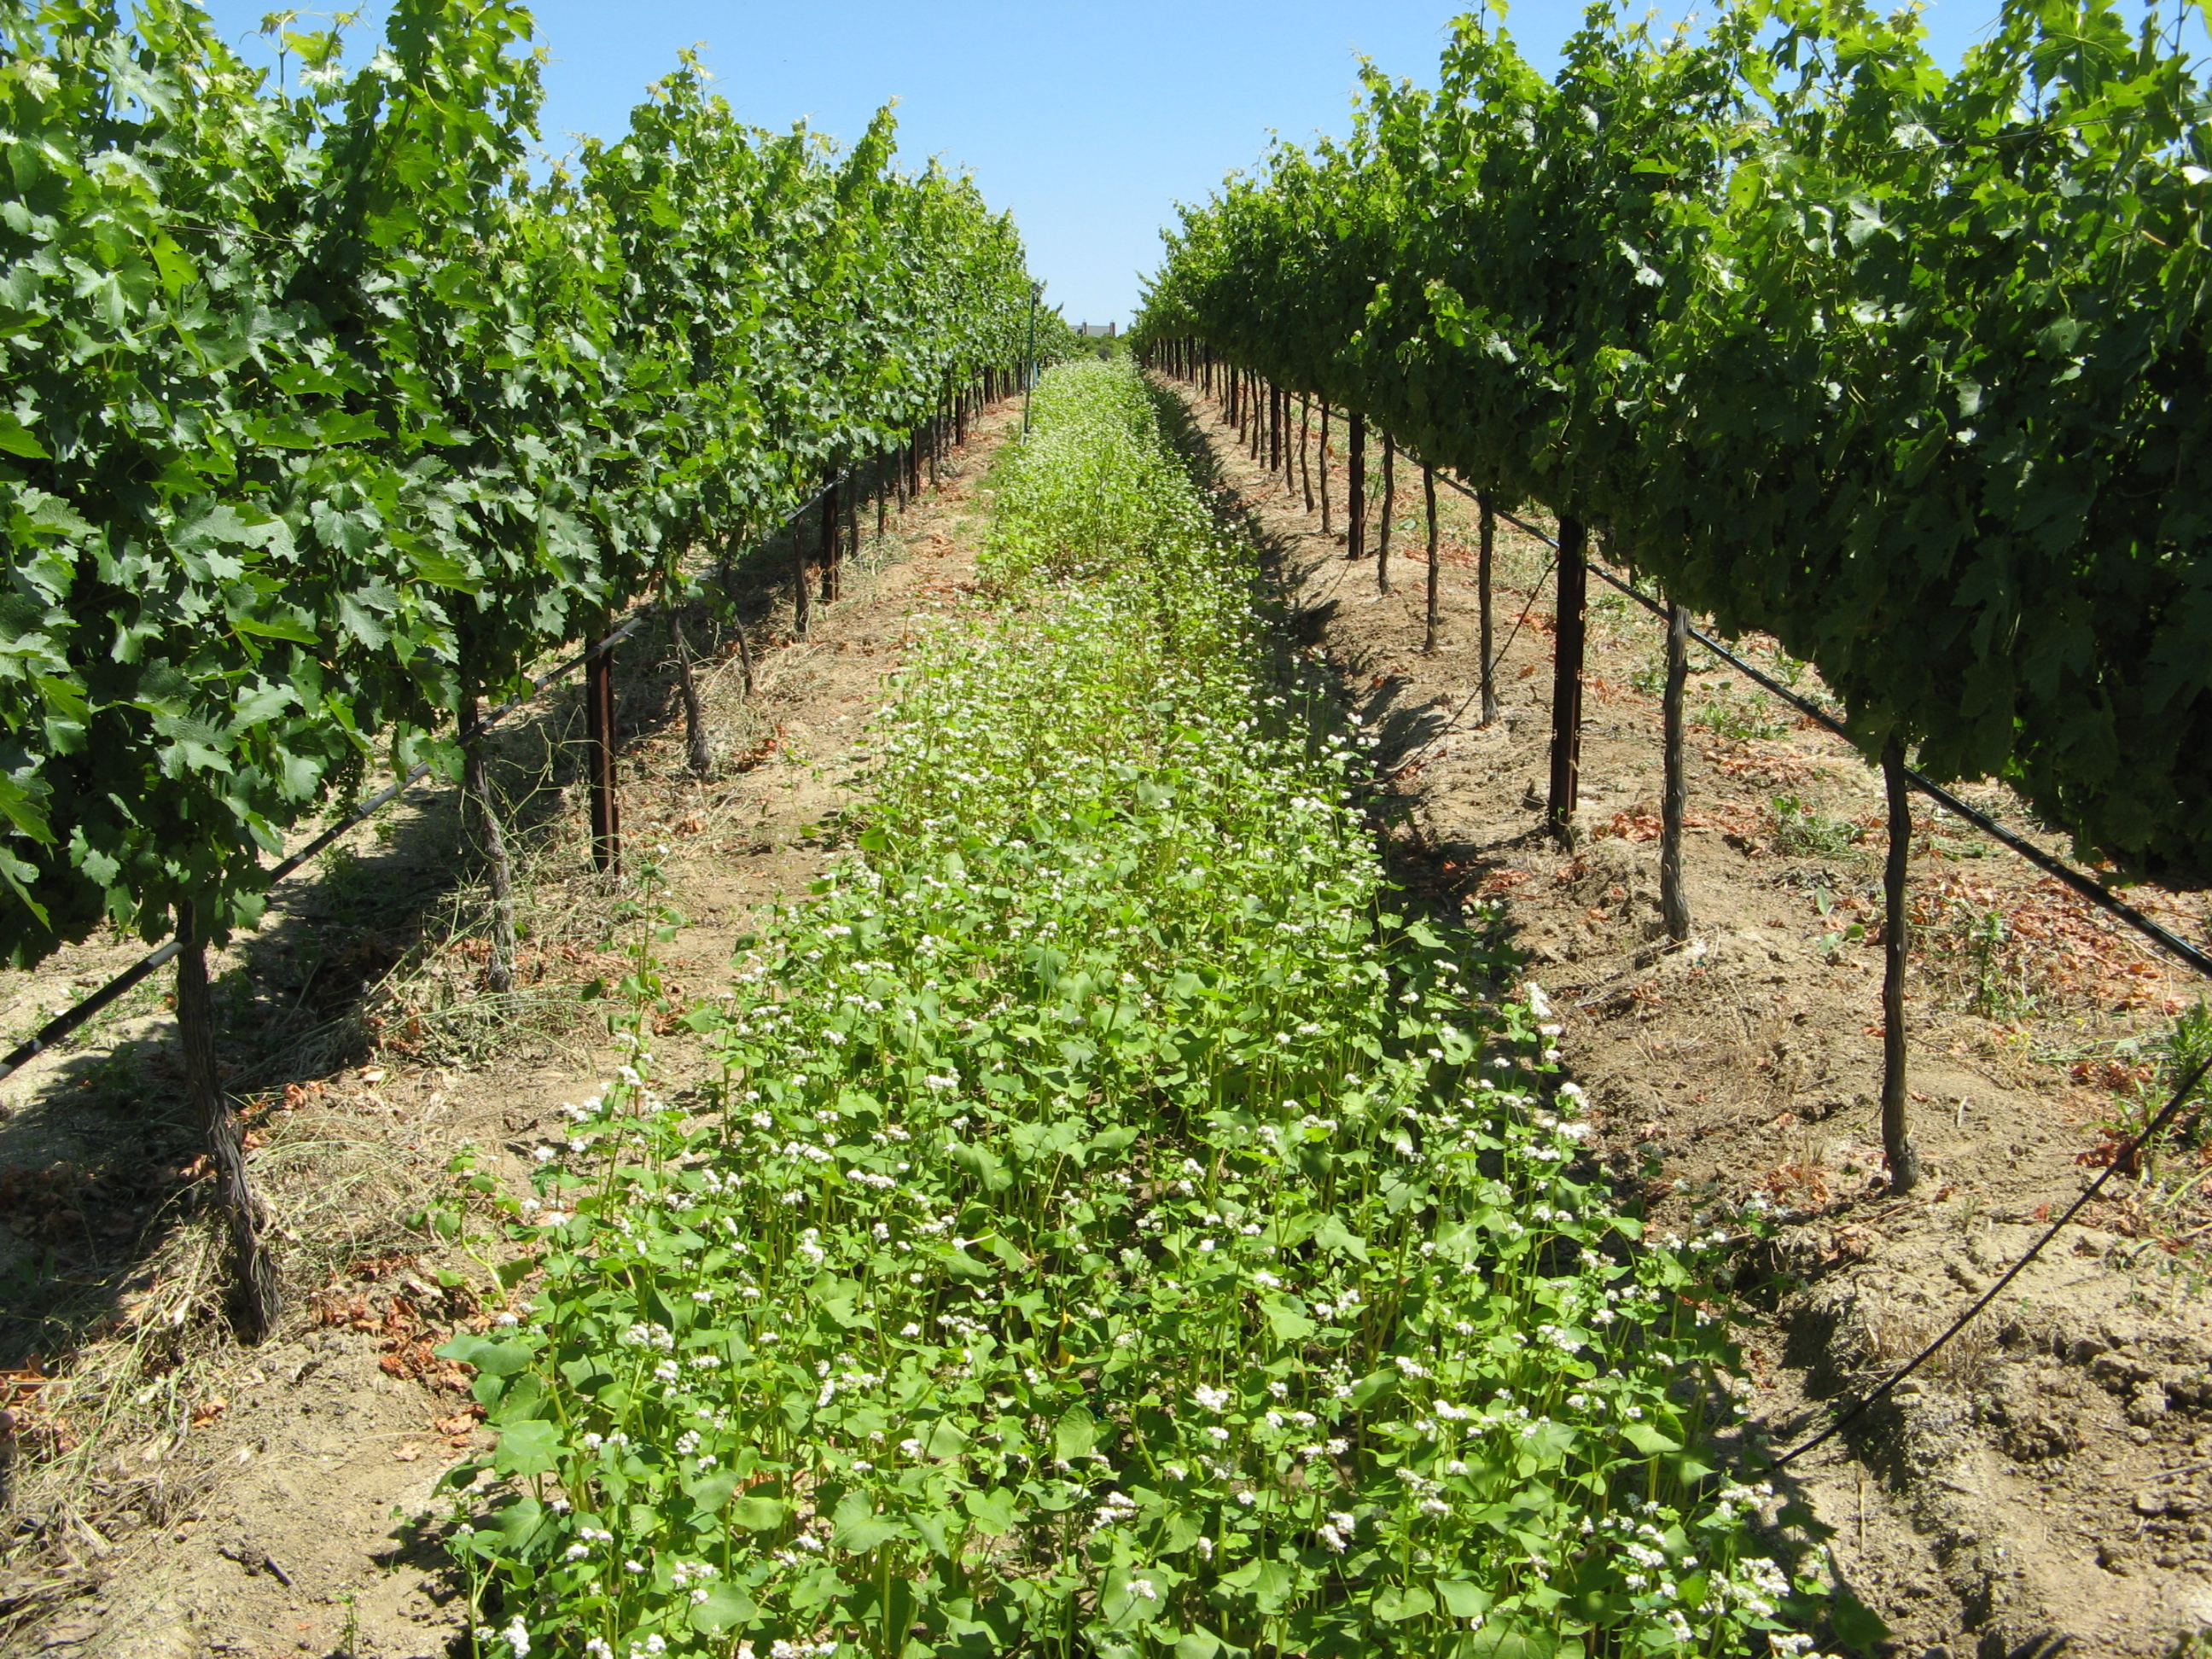 The cover crop specialist will look for a green cover that is well-adapted to the local circumstances and includes commercially interesting species. (picture from University of California - Riverside)